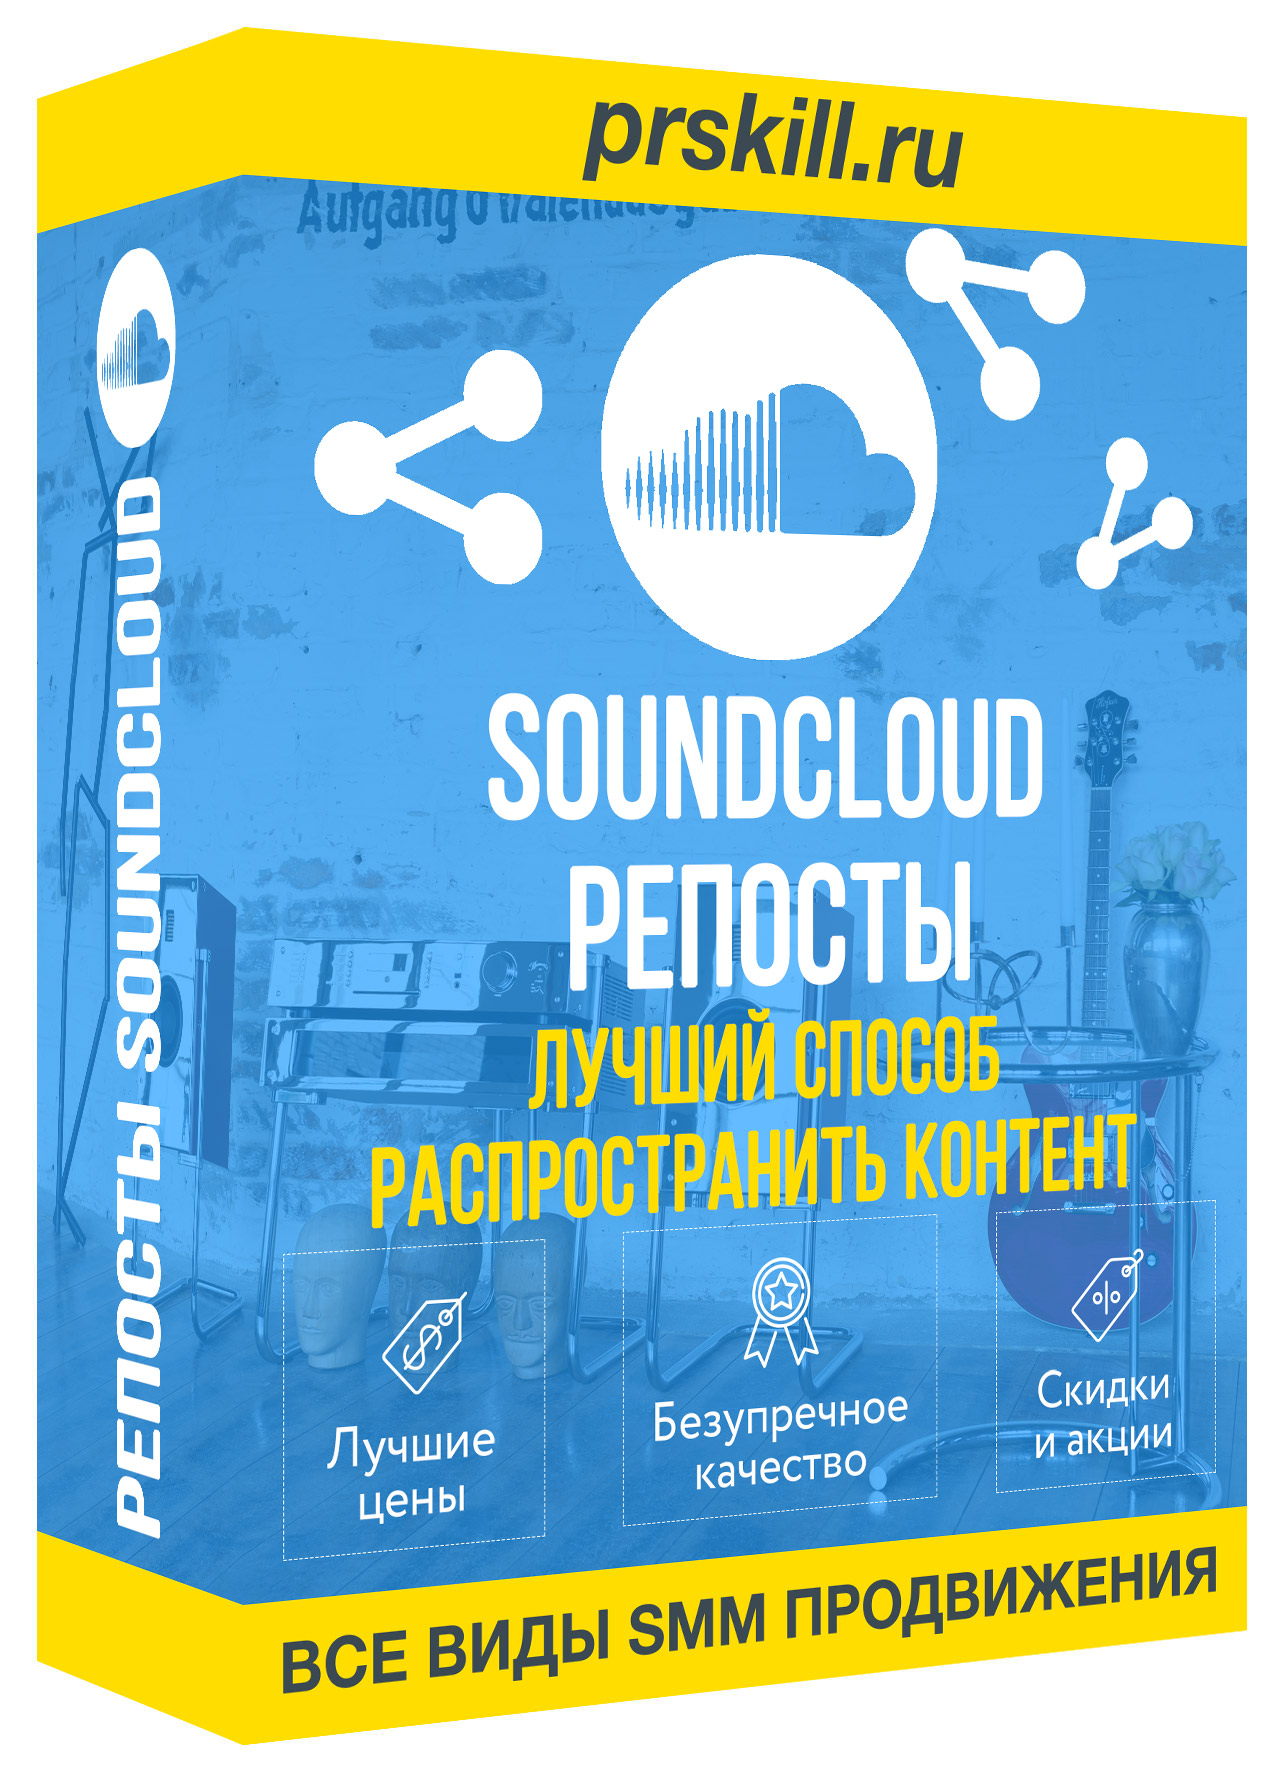 Репосты SoundCloud. Купить репосты в SoundCloud. SoundCloud Reposts.